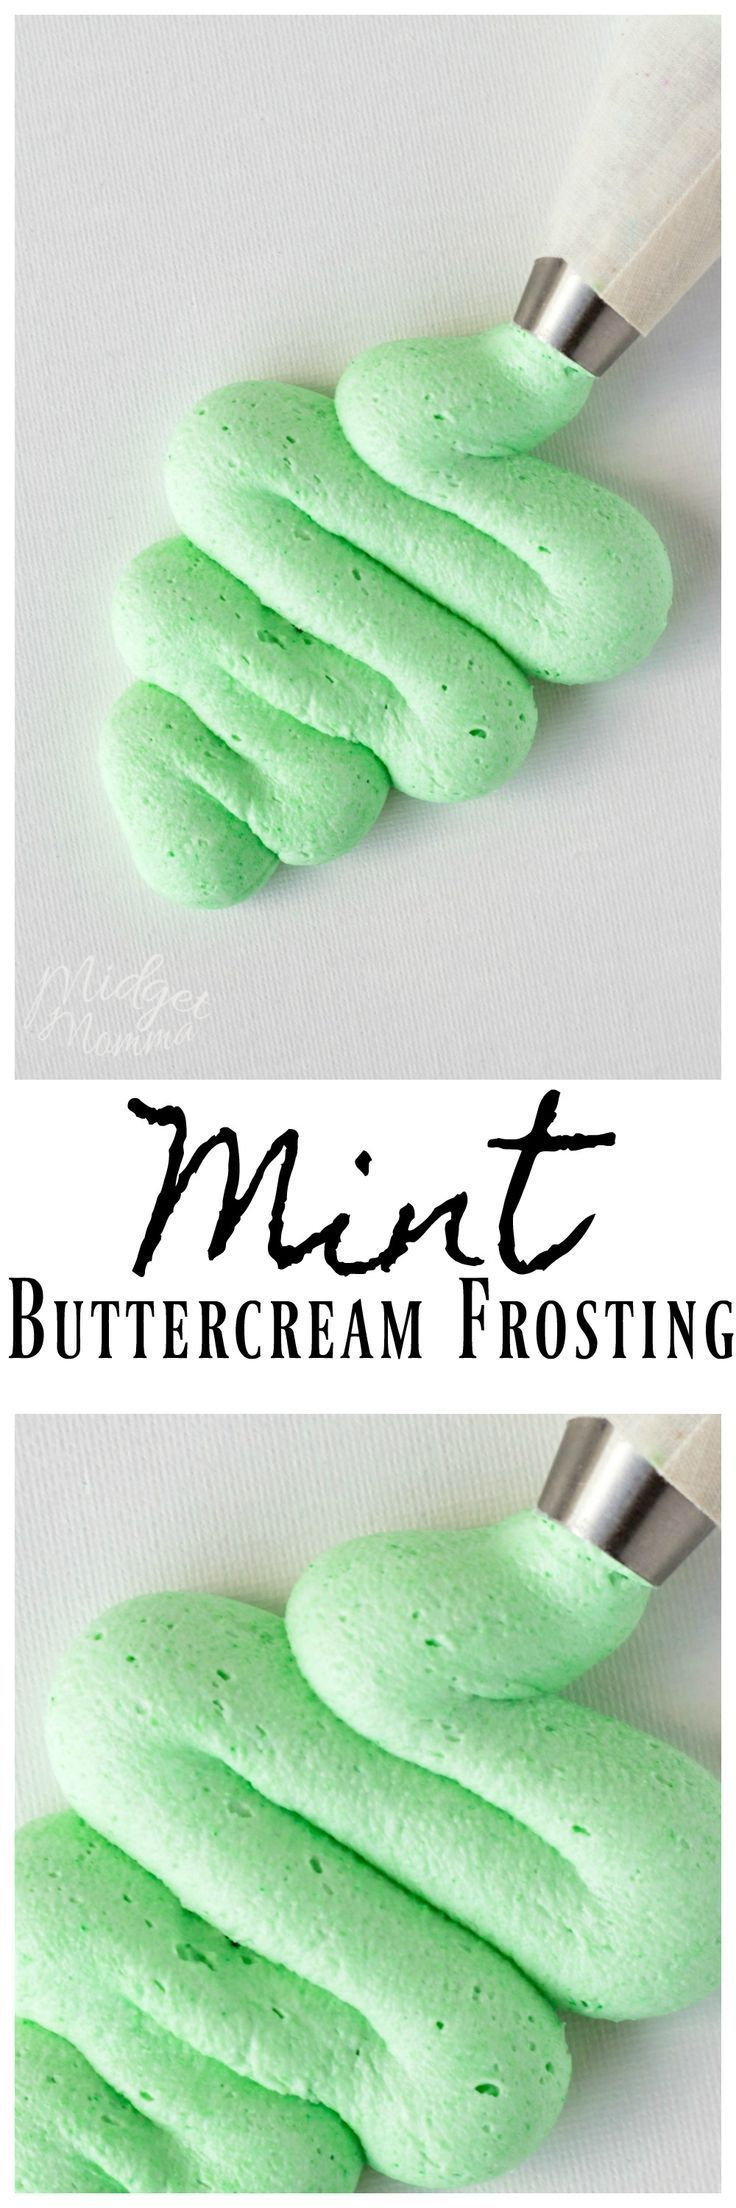 Mint Buttercream Frosting. This amazing Mint Buttercream Frosting tastes just like you get from a bakery and goes perfect with cupcakes and cake! #frosting #cake #cupcake #icing #Mint